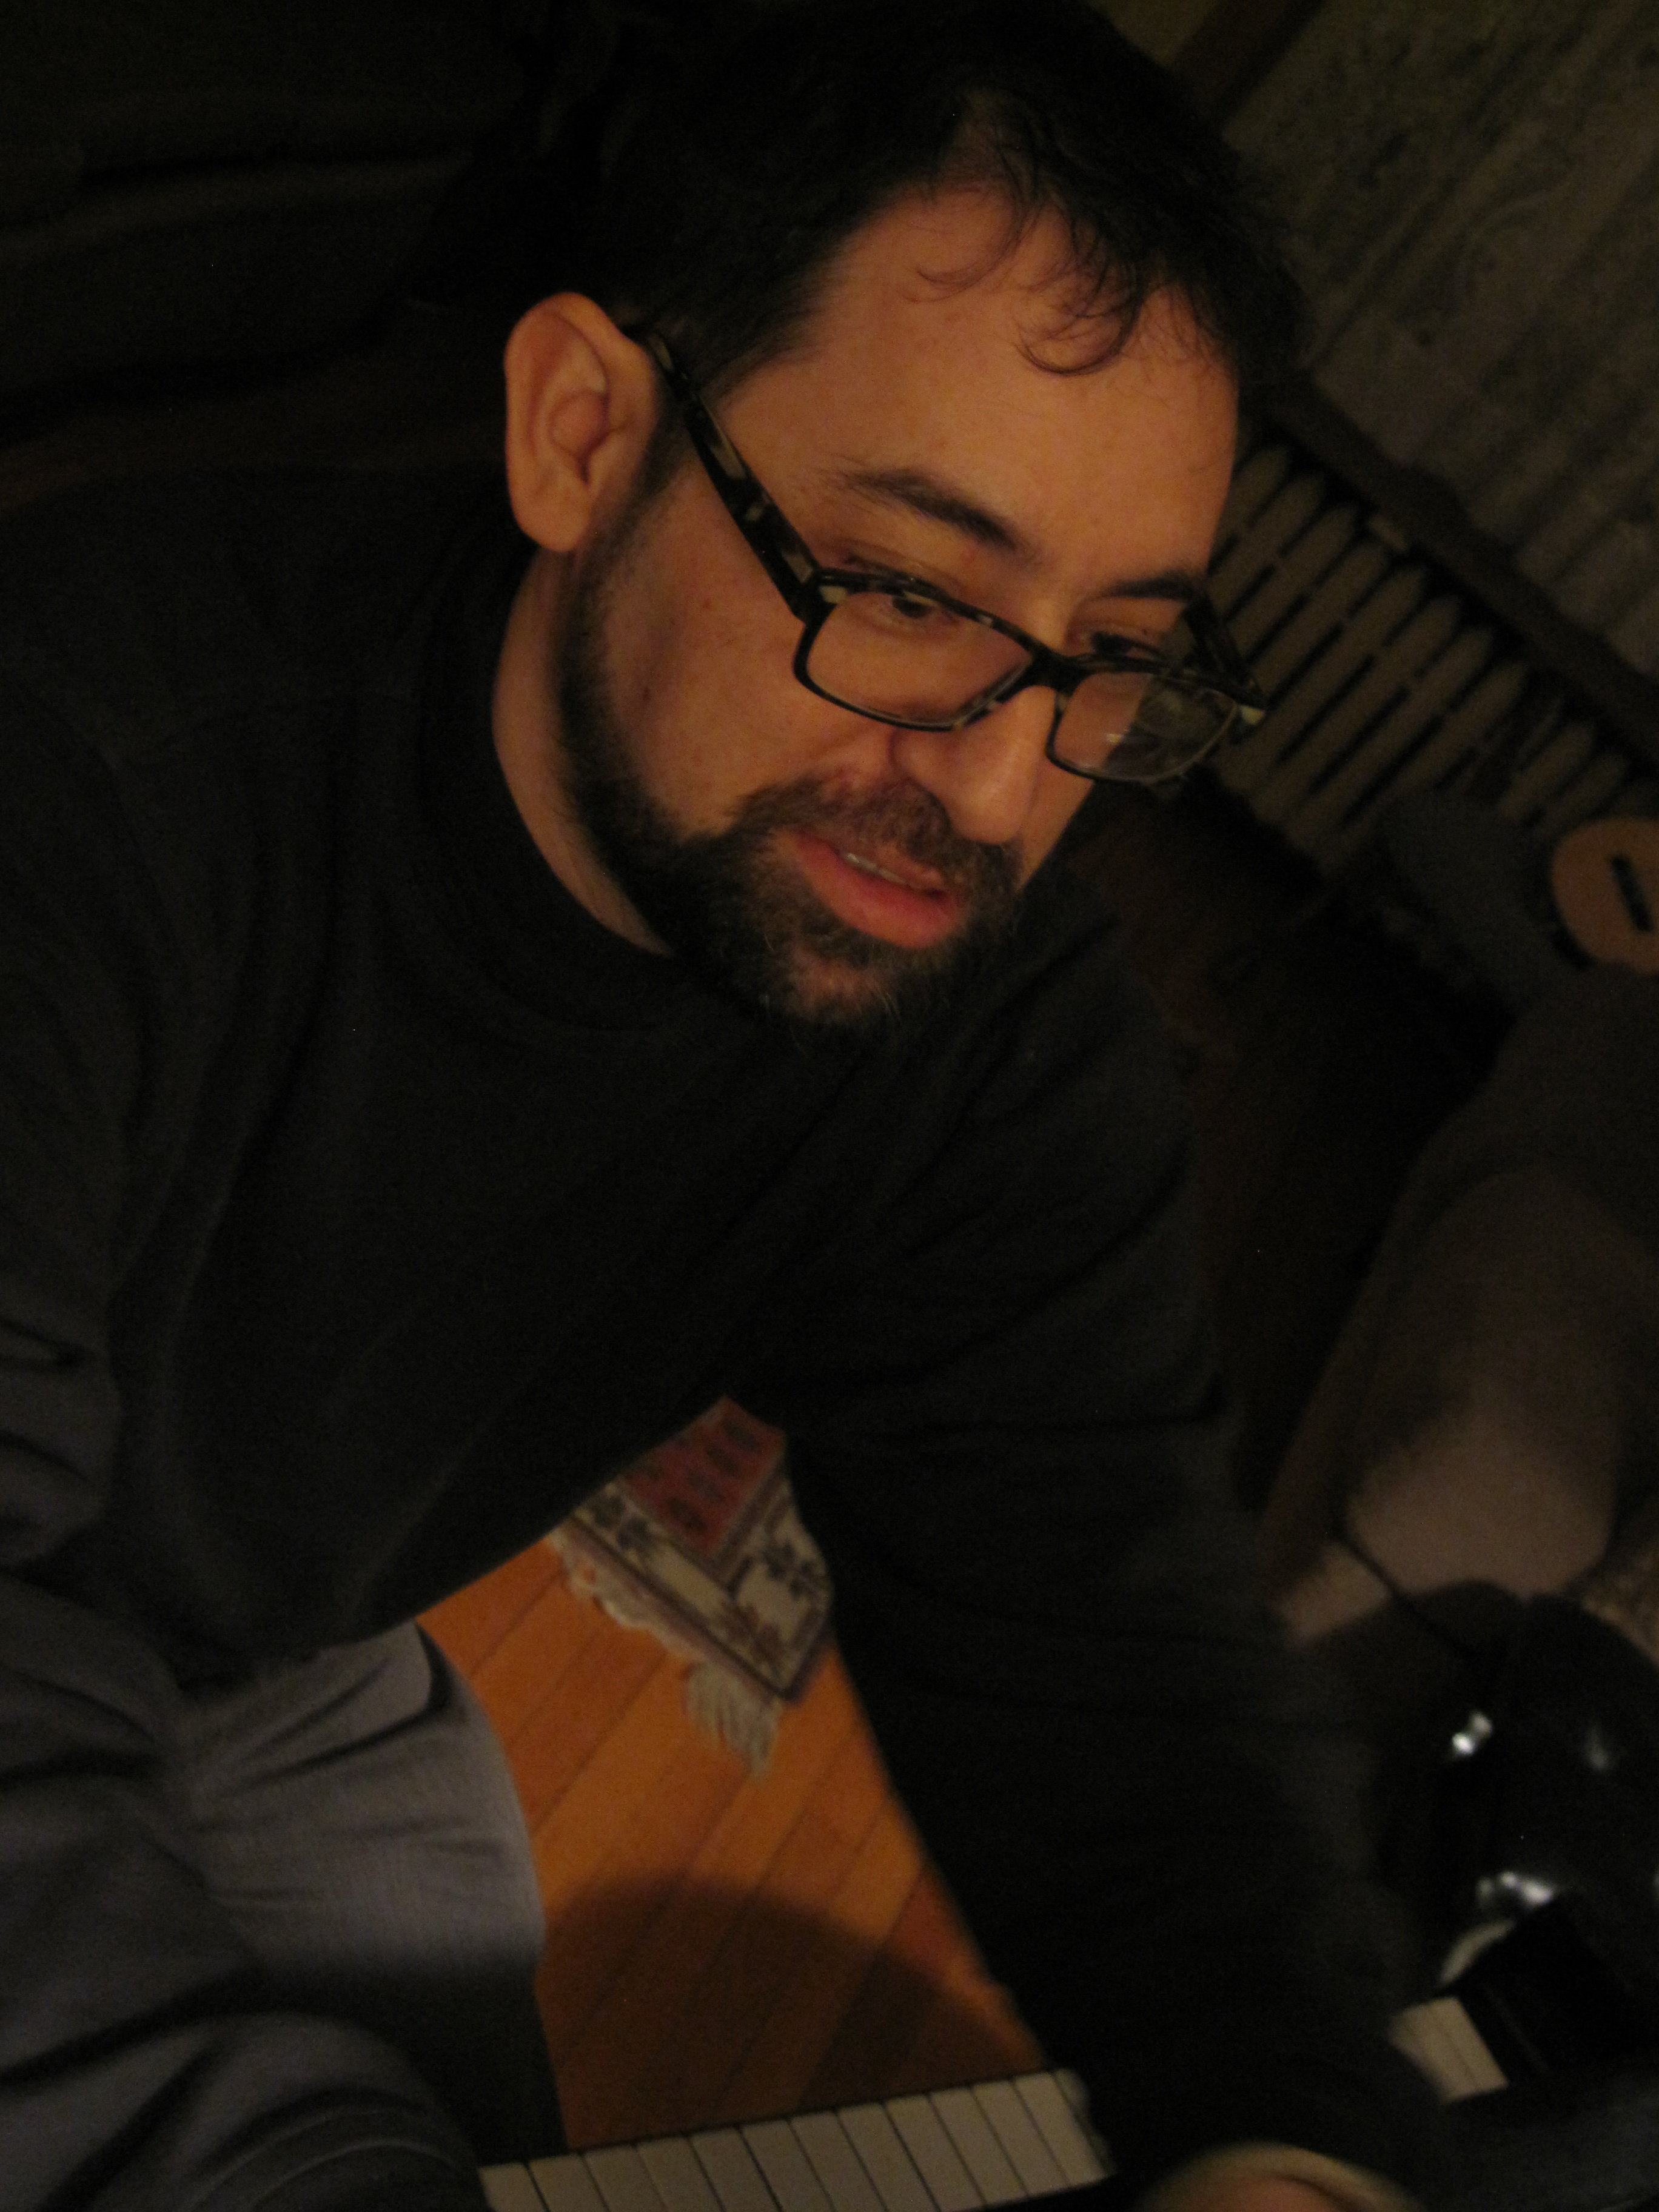 Rick Perlstein at a piano, selecting music to play from a book of jazz standards, Chicago, March 2013.